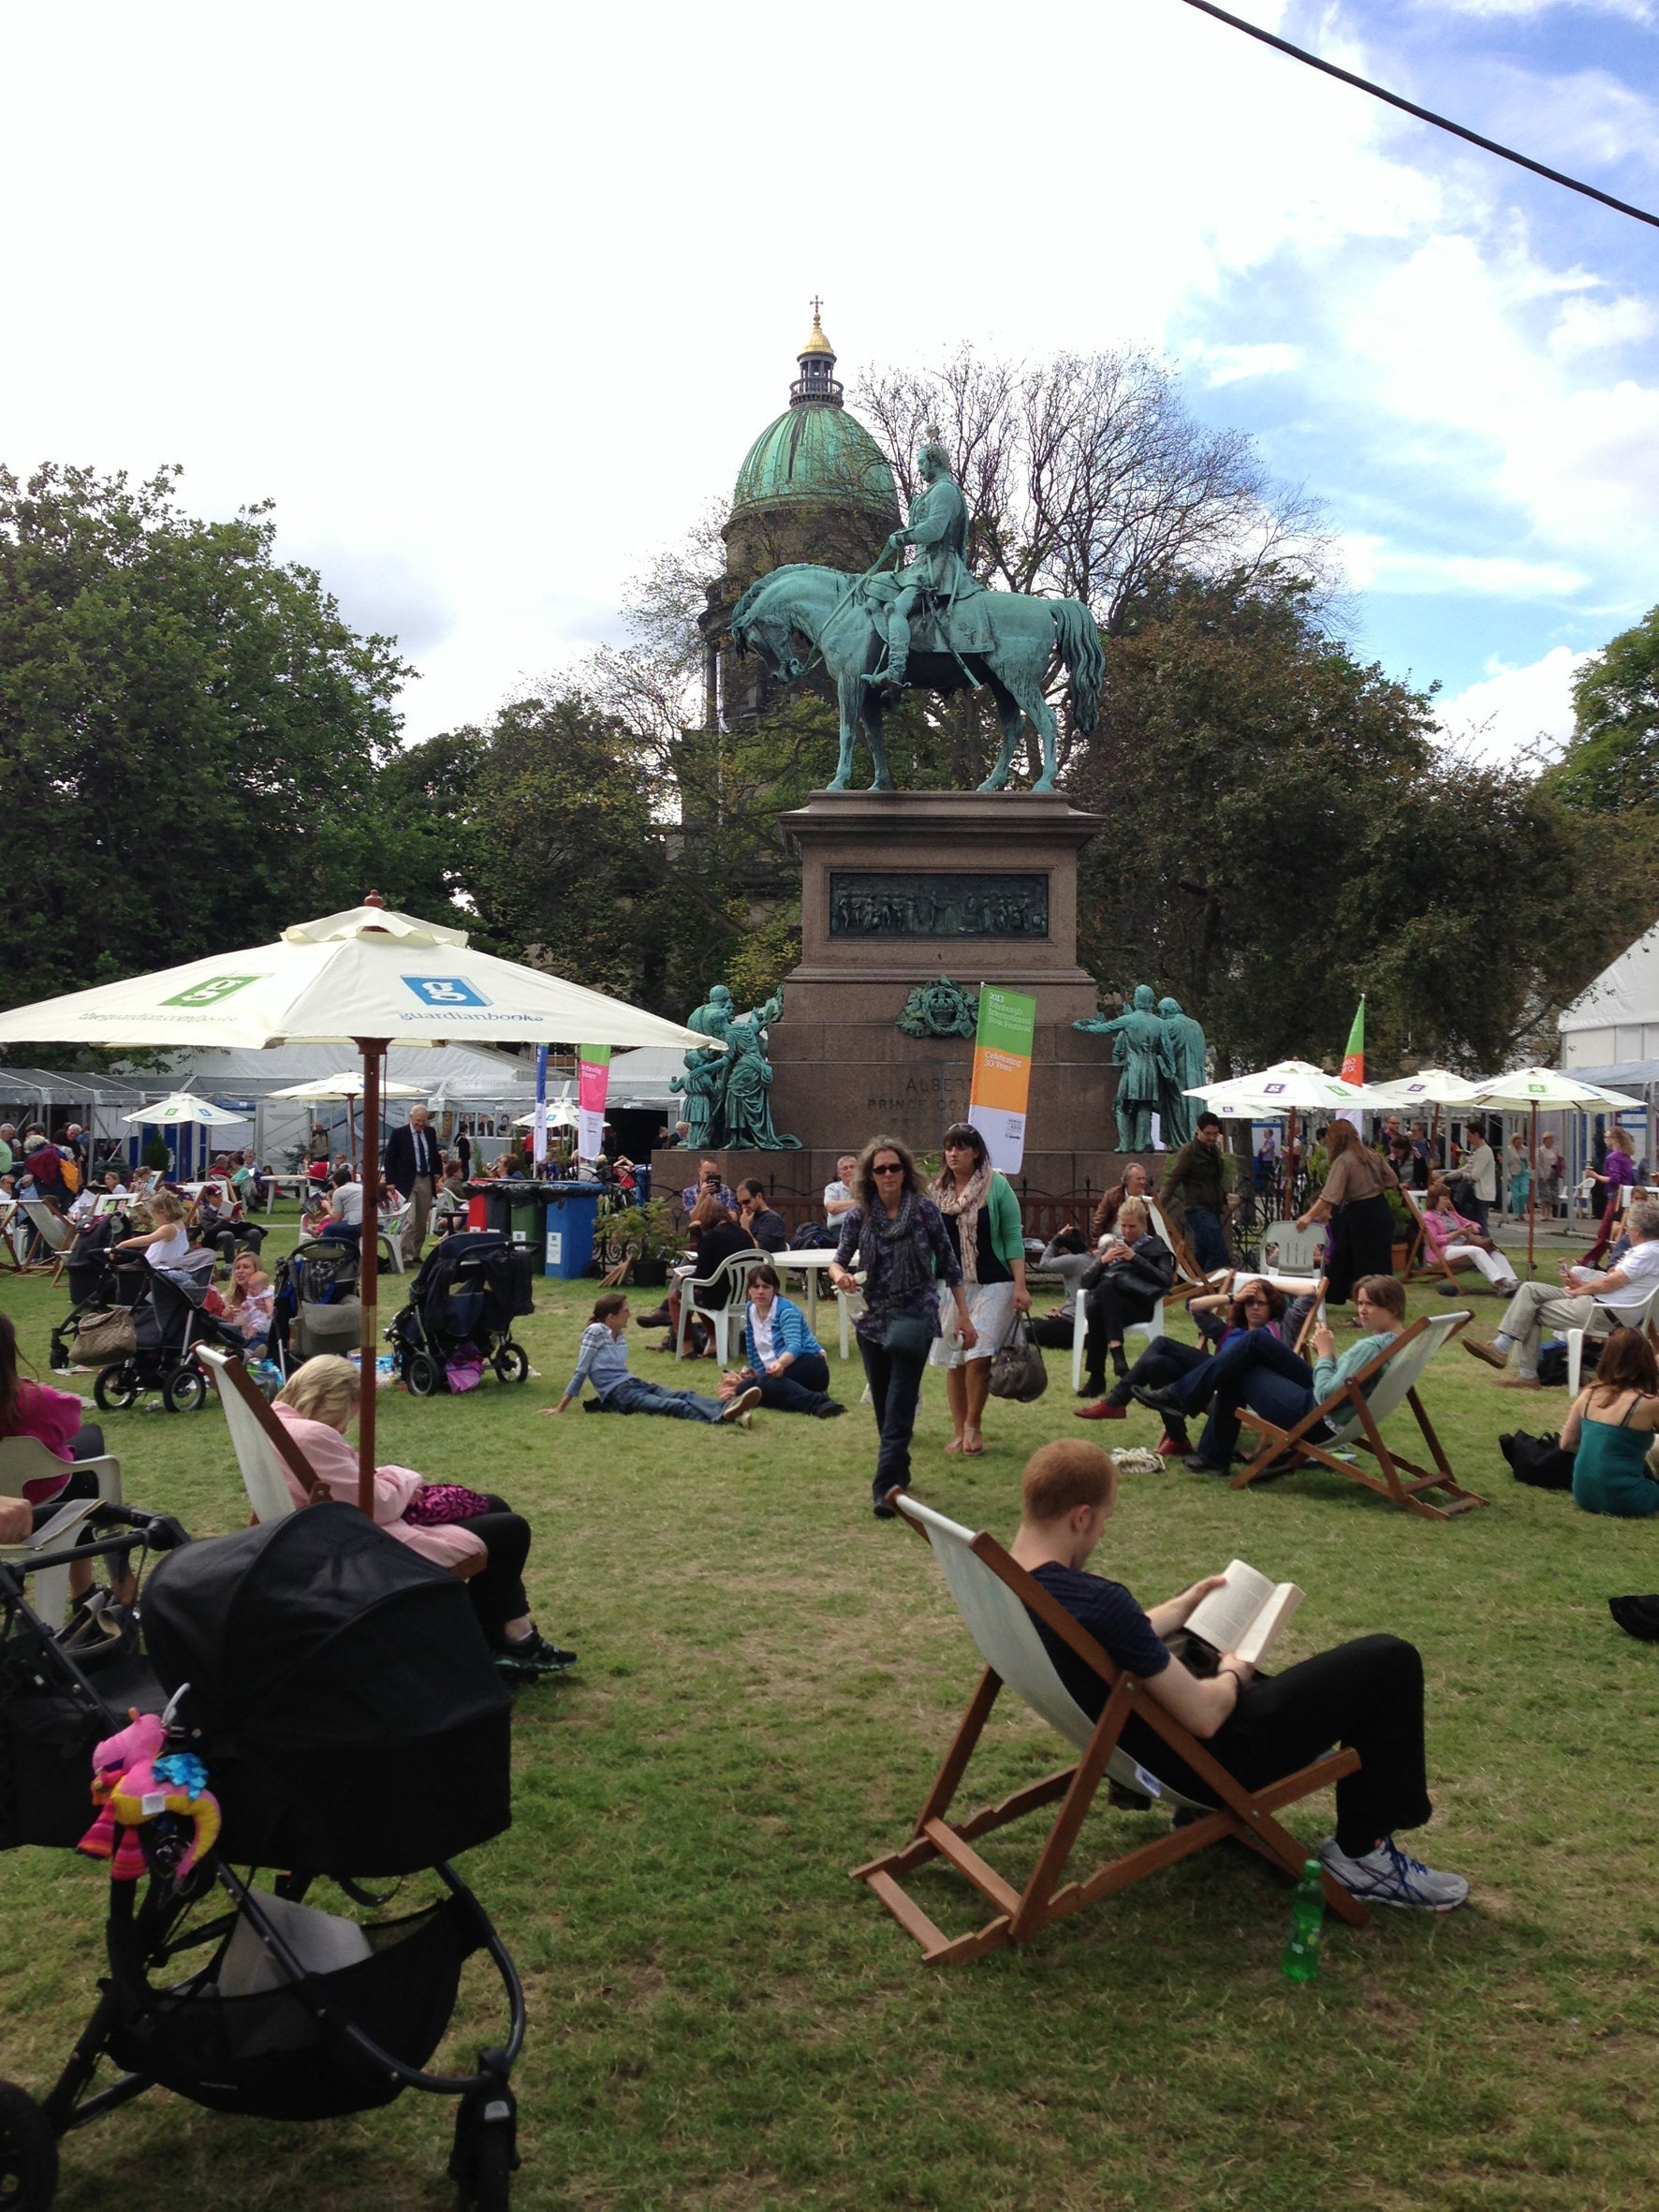 Elta Fans brings breath of fresh air to this year's Edinburgh International Book Festival